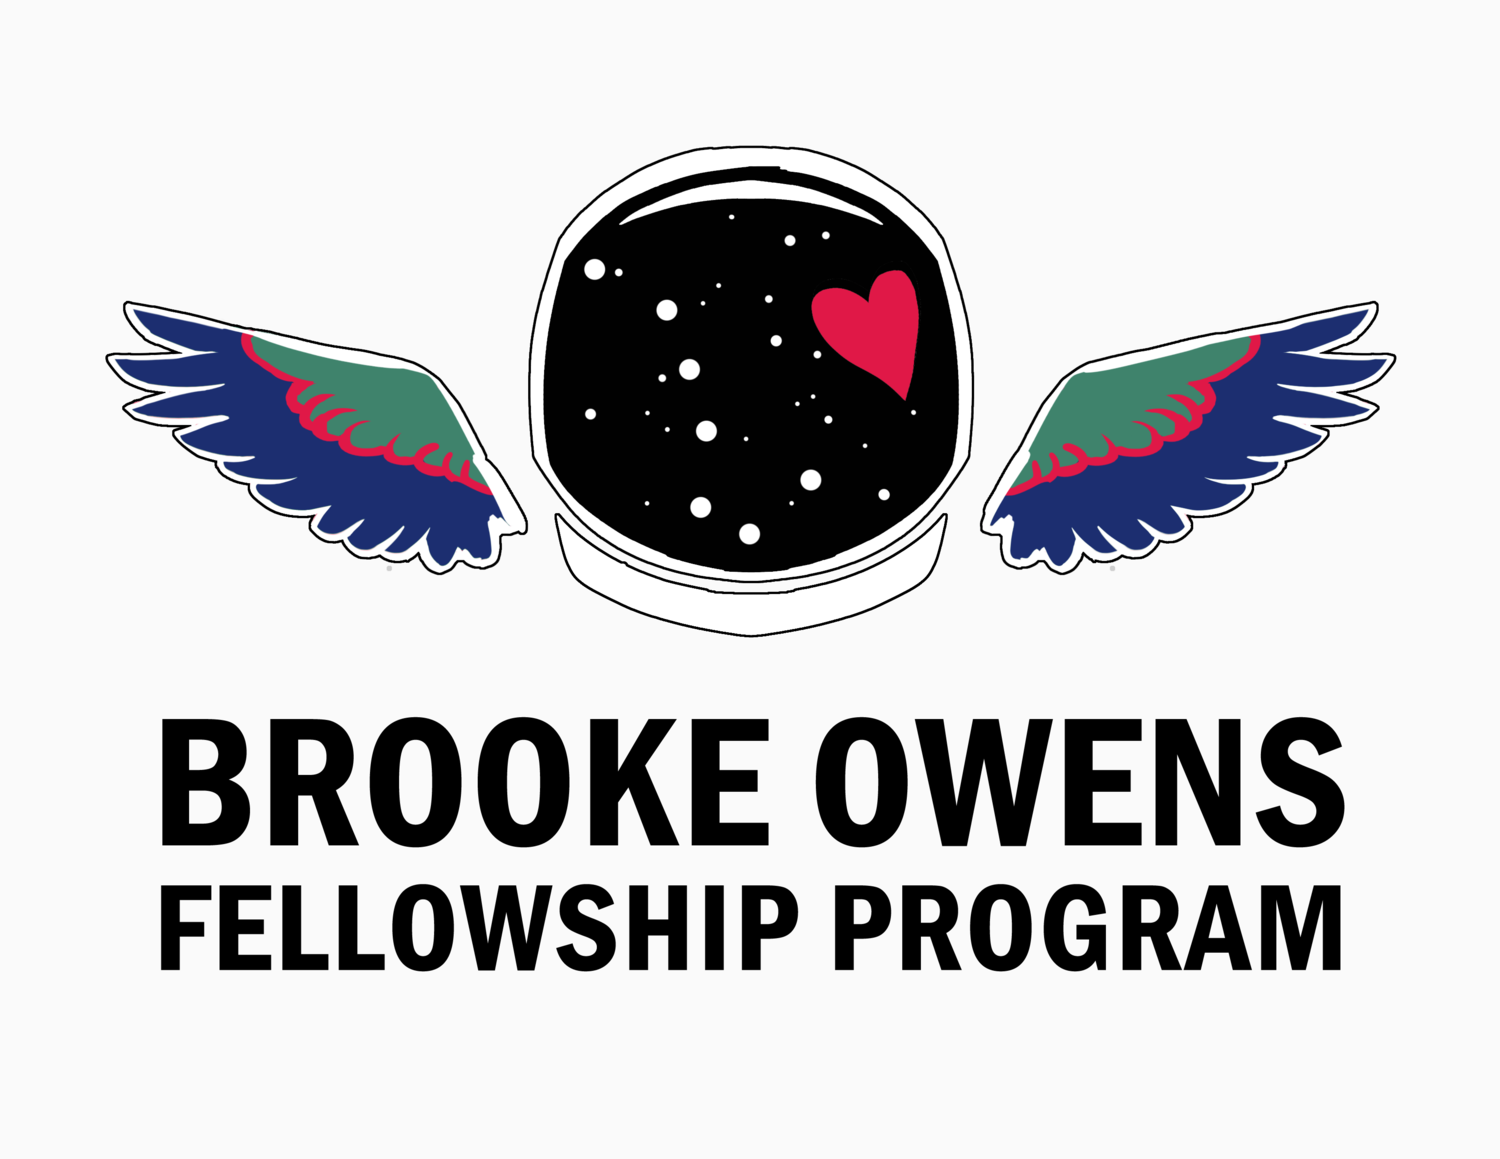 Brooke Owens Fellowship Program